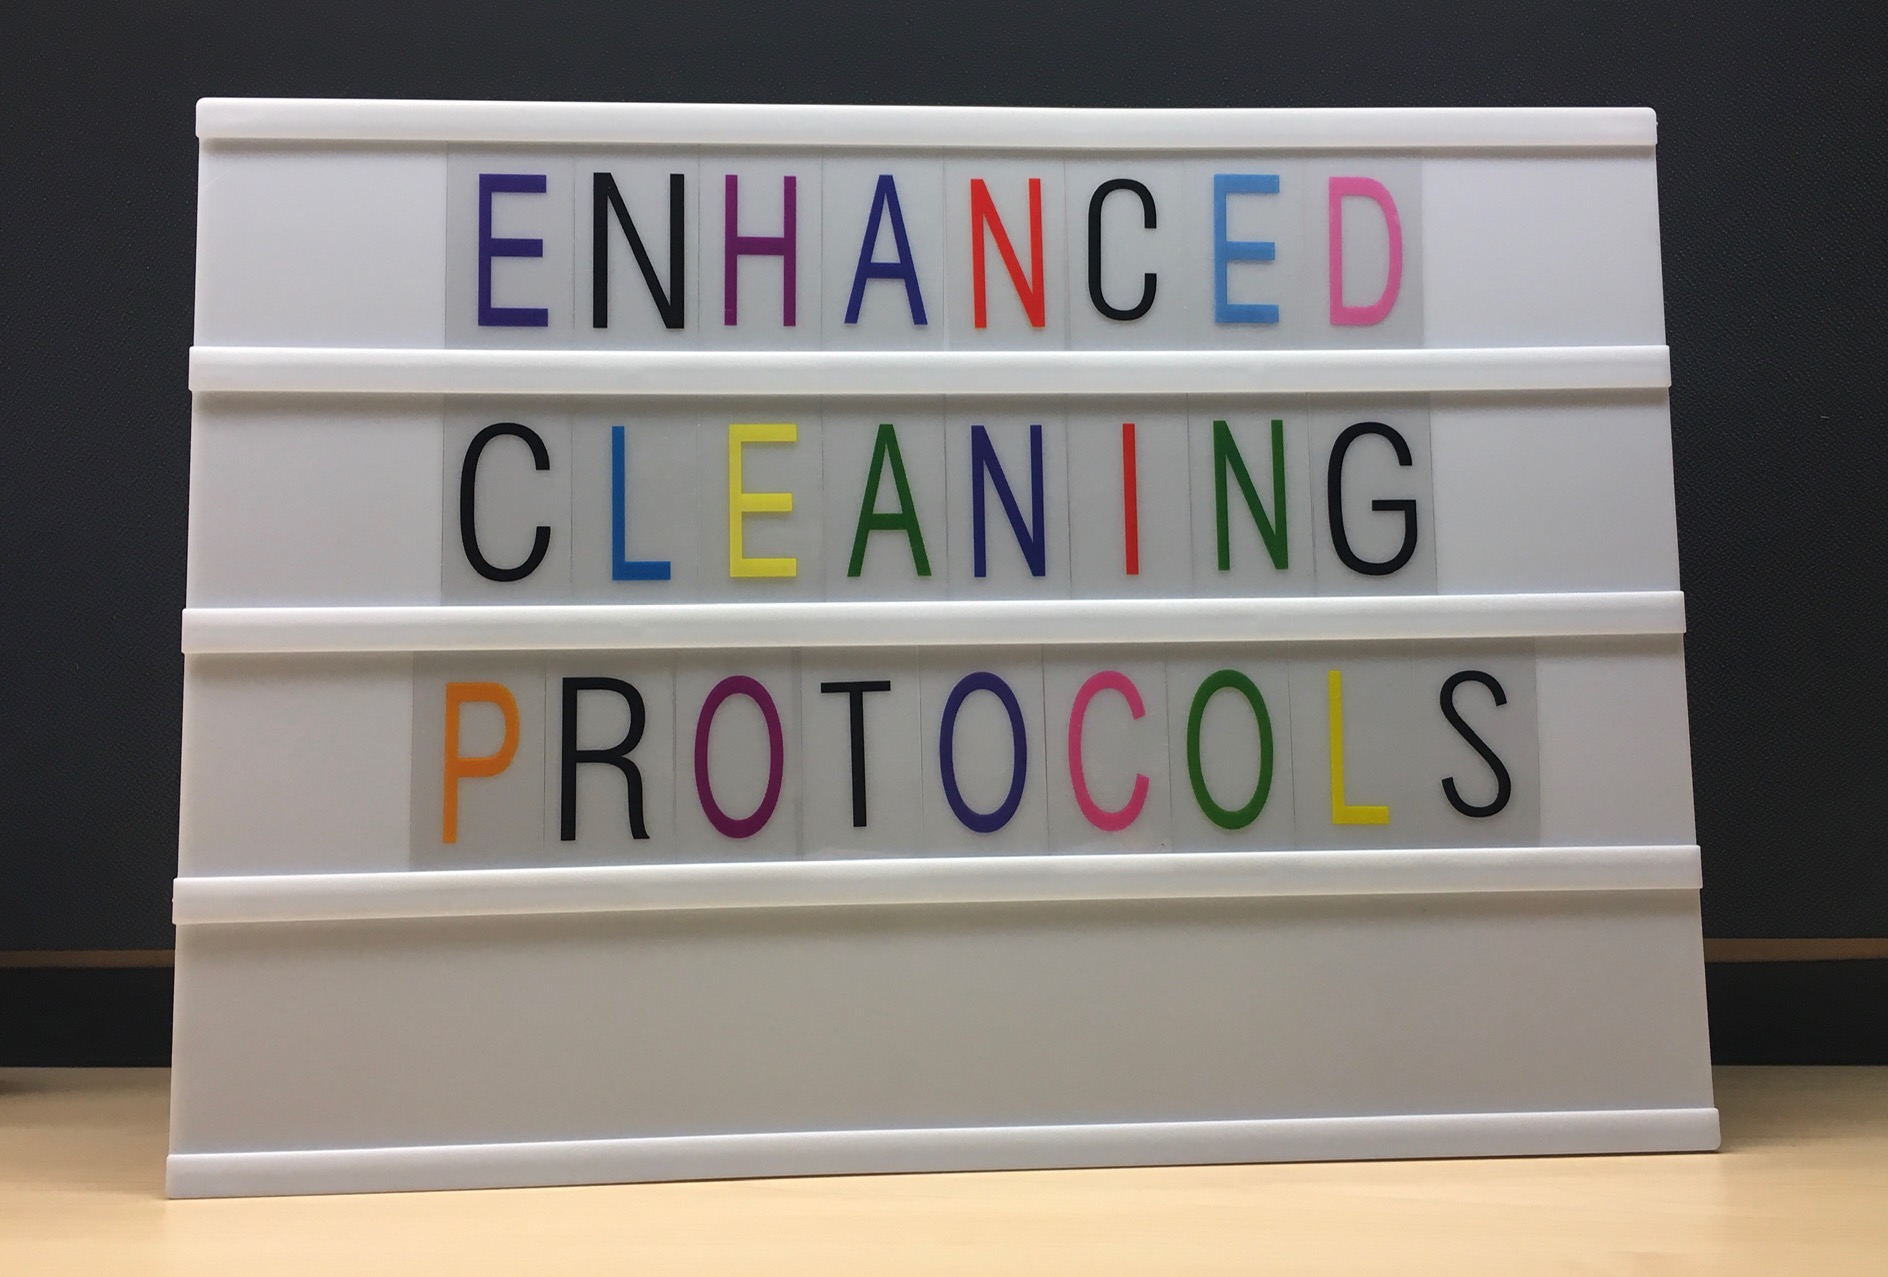 enhanced cleaning protocols sign